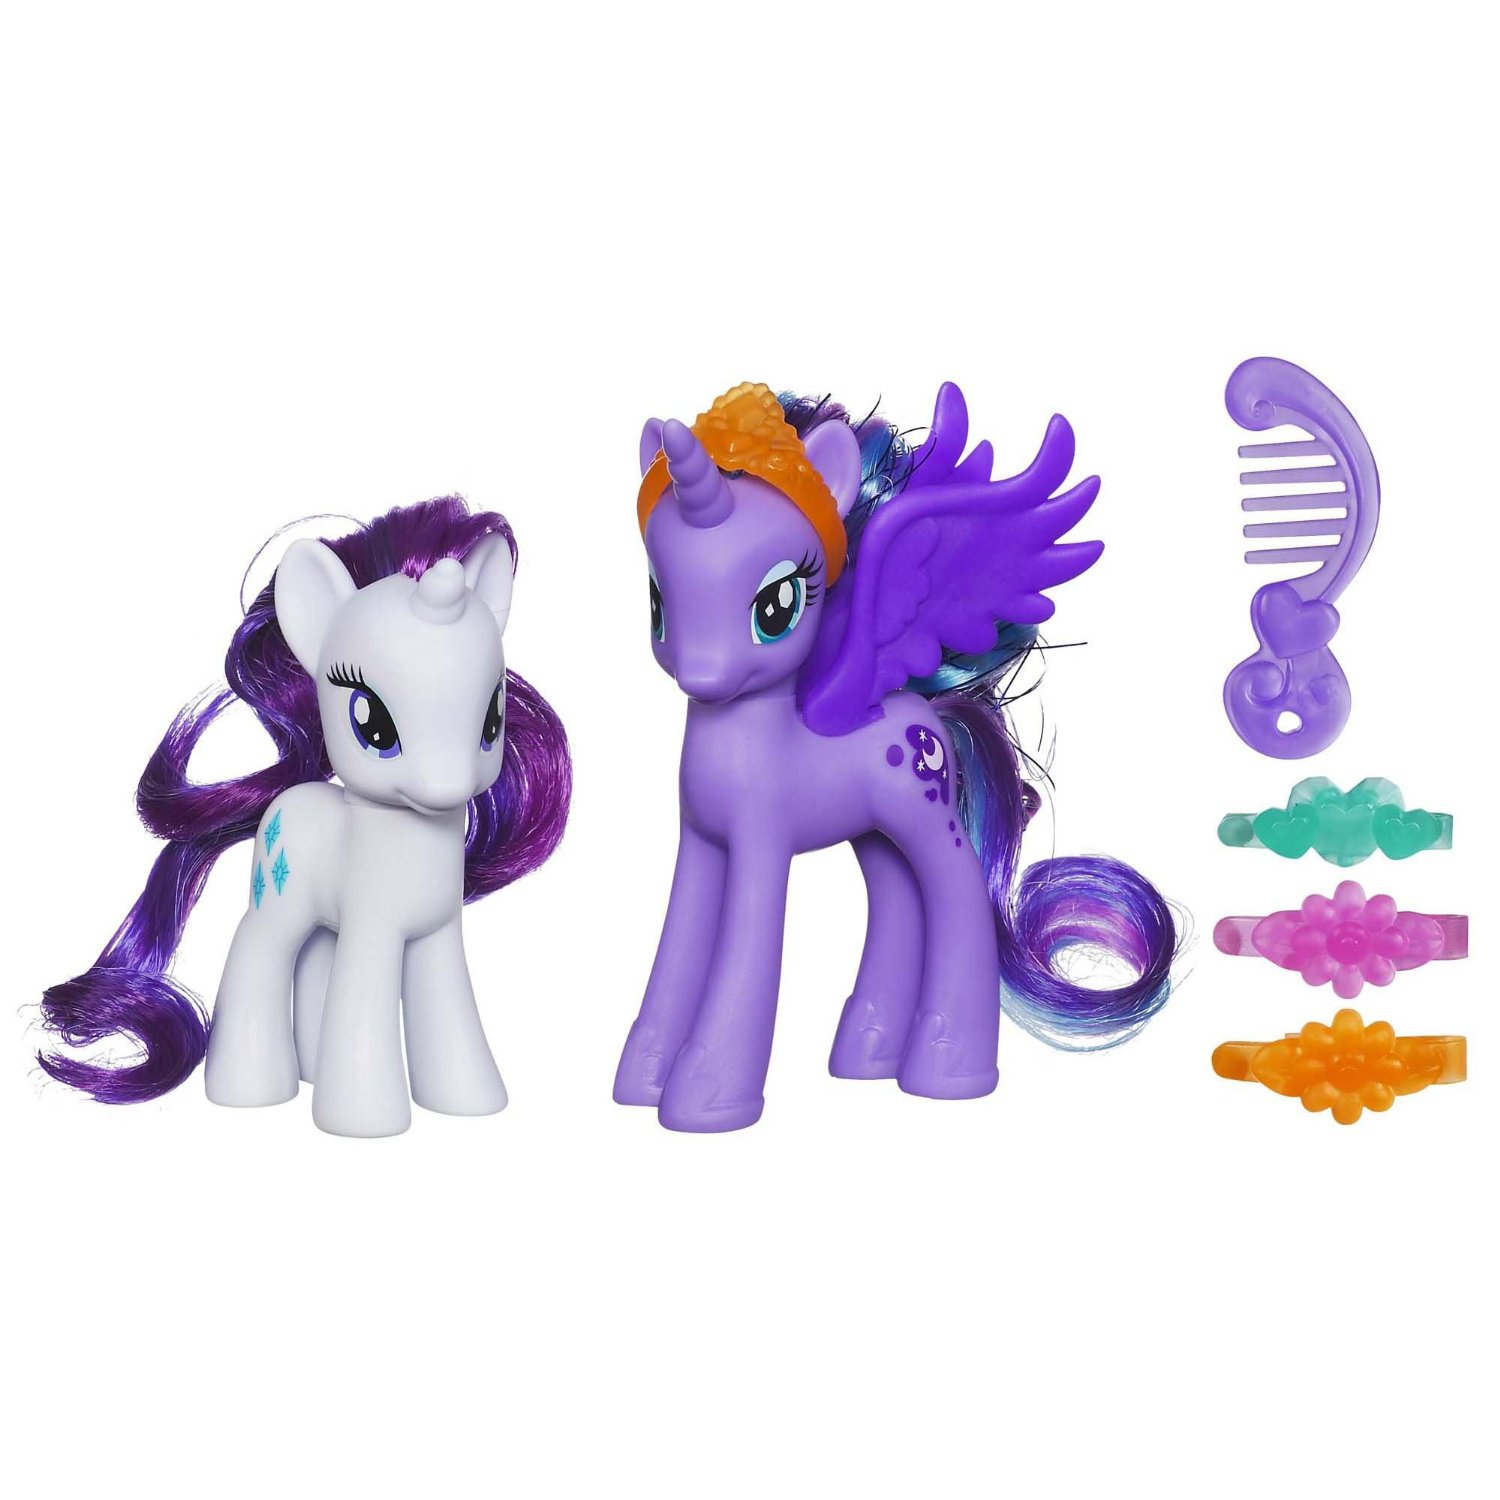 Buy My Little Pony Princess Luna And Rarity Figures In Cheap Price